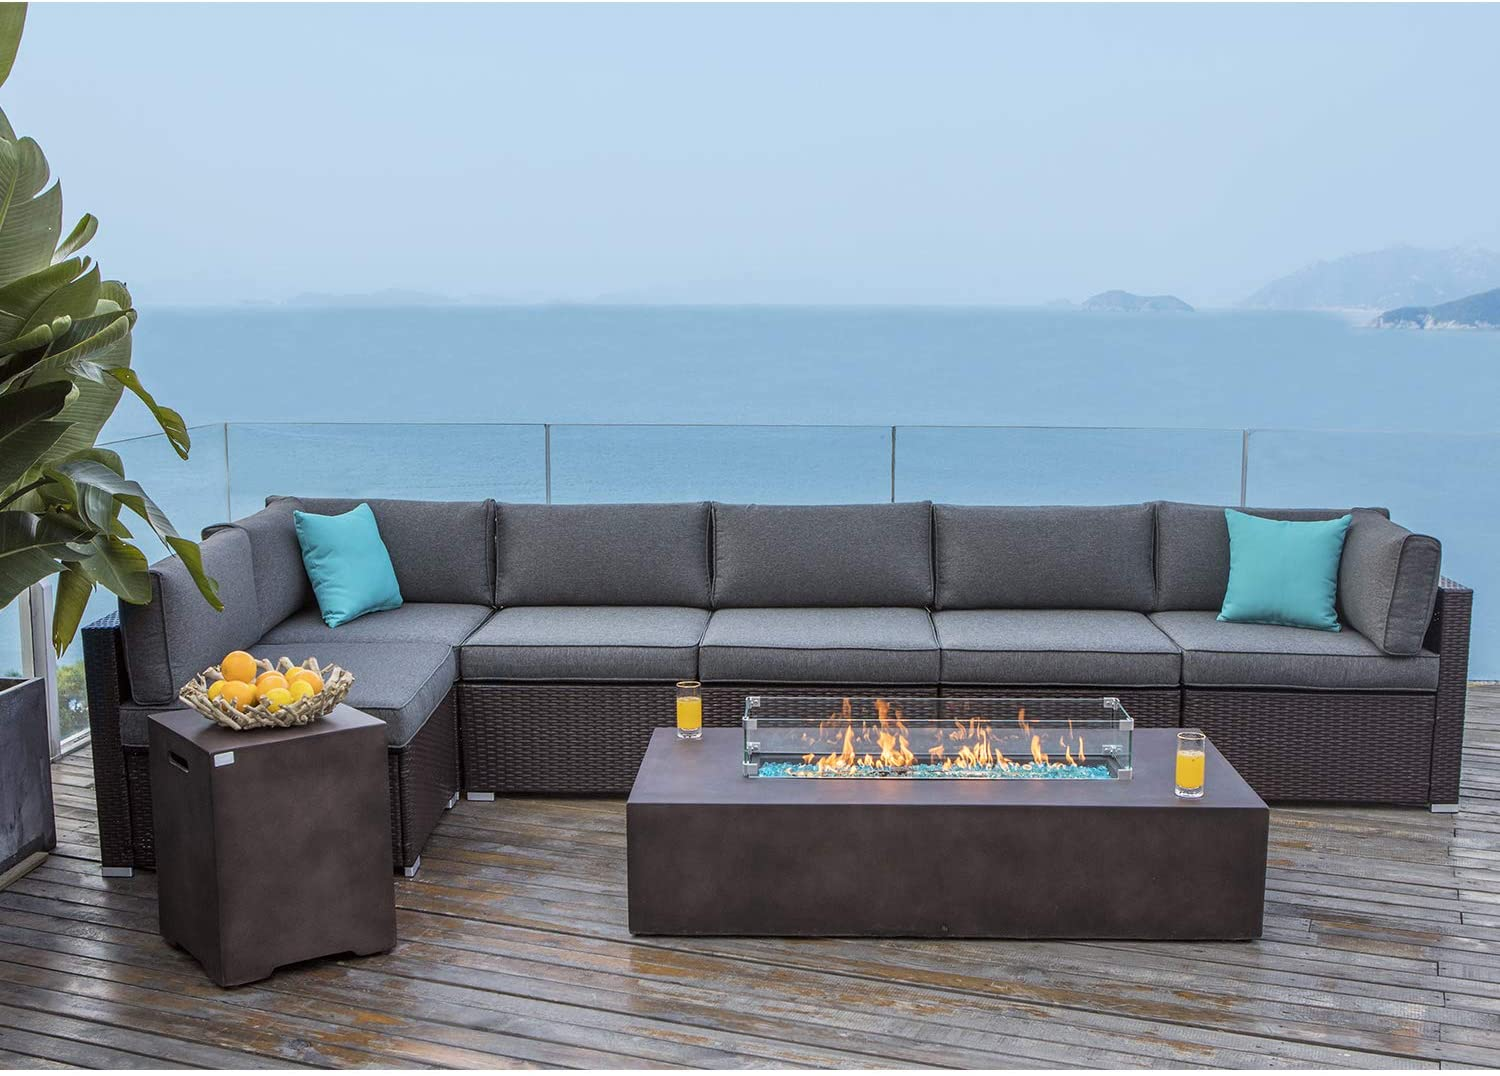 cosiest 8 piece propane firepit table outdoor wicker sectional sofa chocolate brown patio furniture set w 56 x 28 inches rectangle bronze fire table